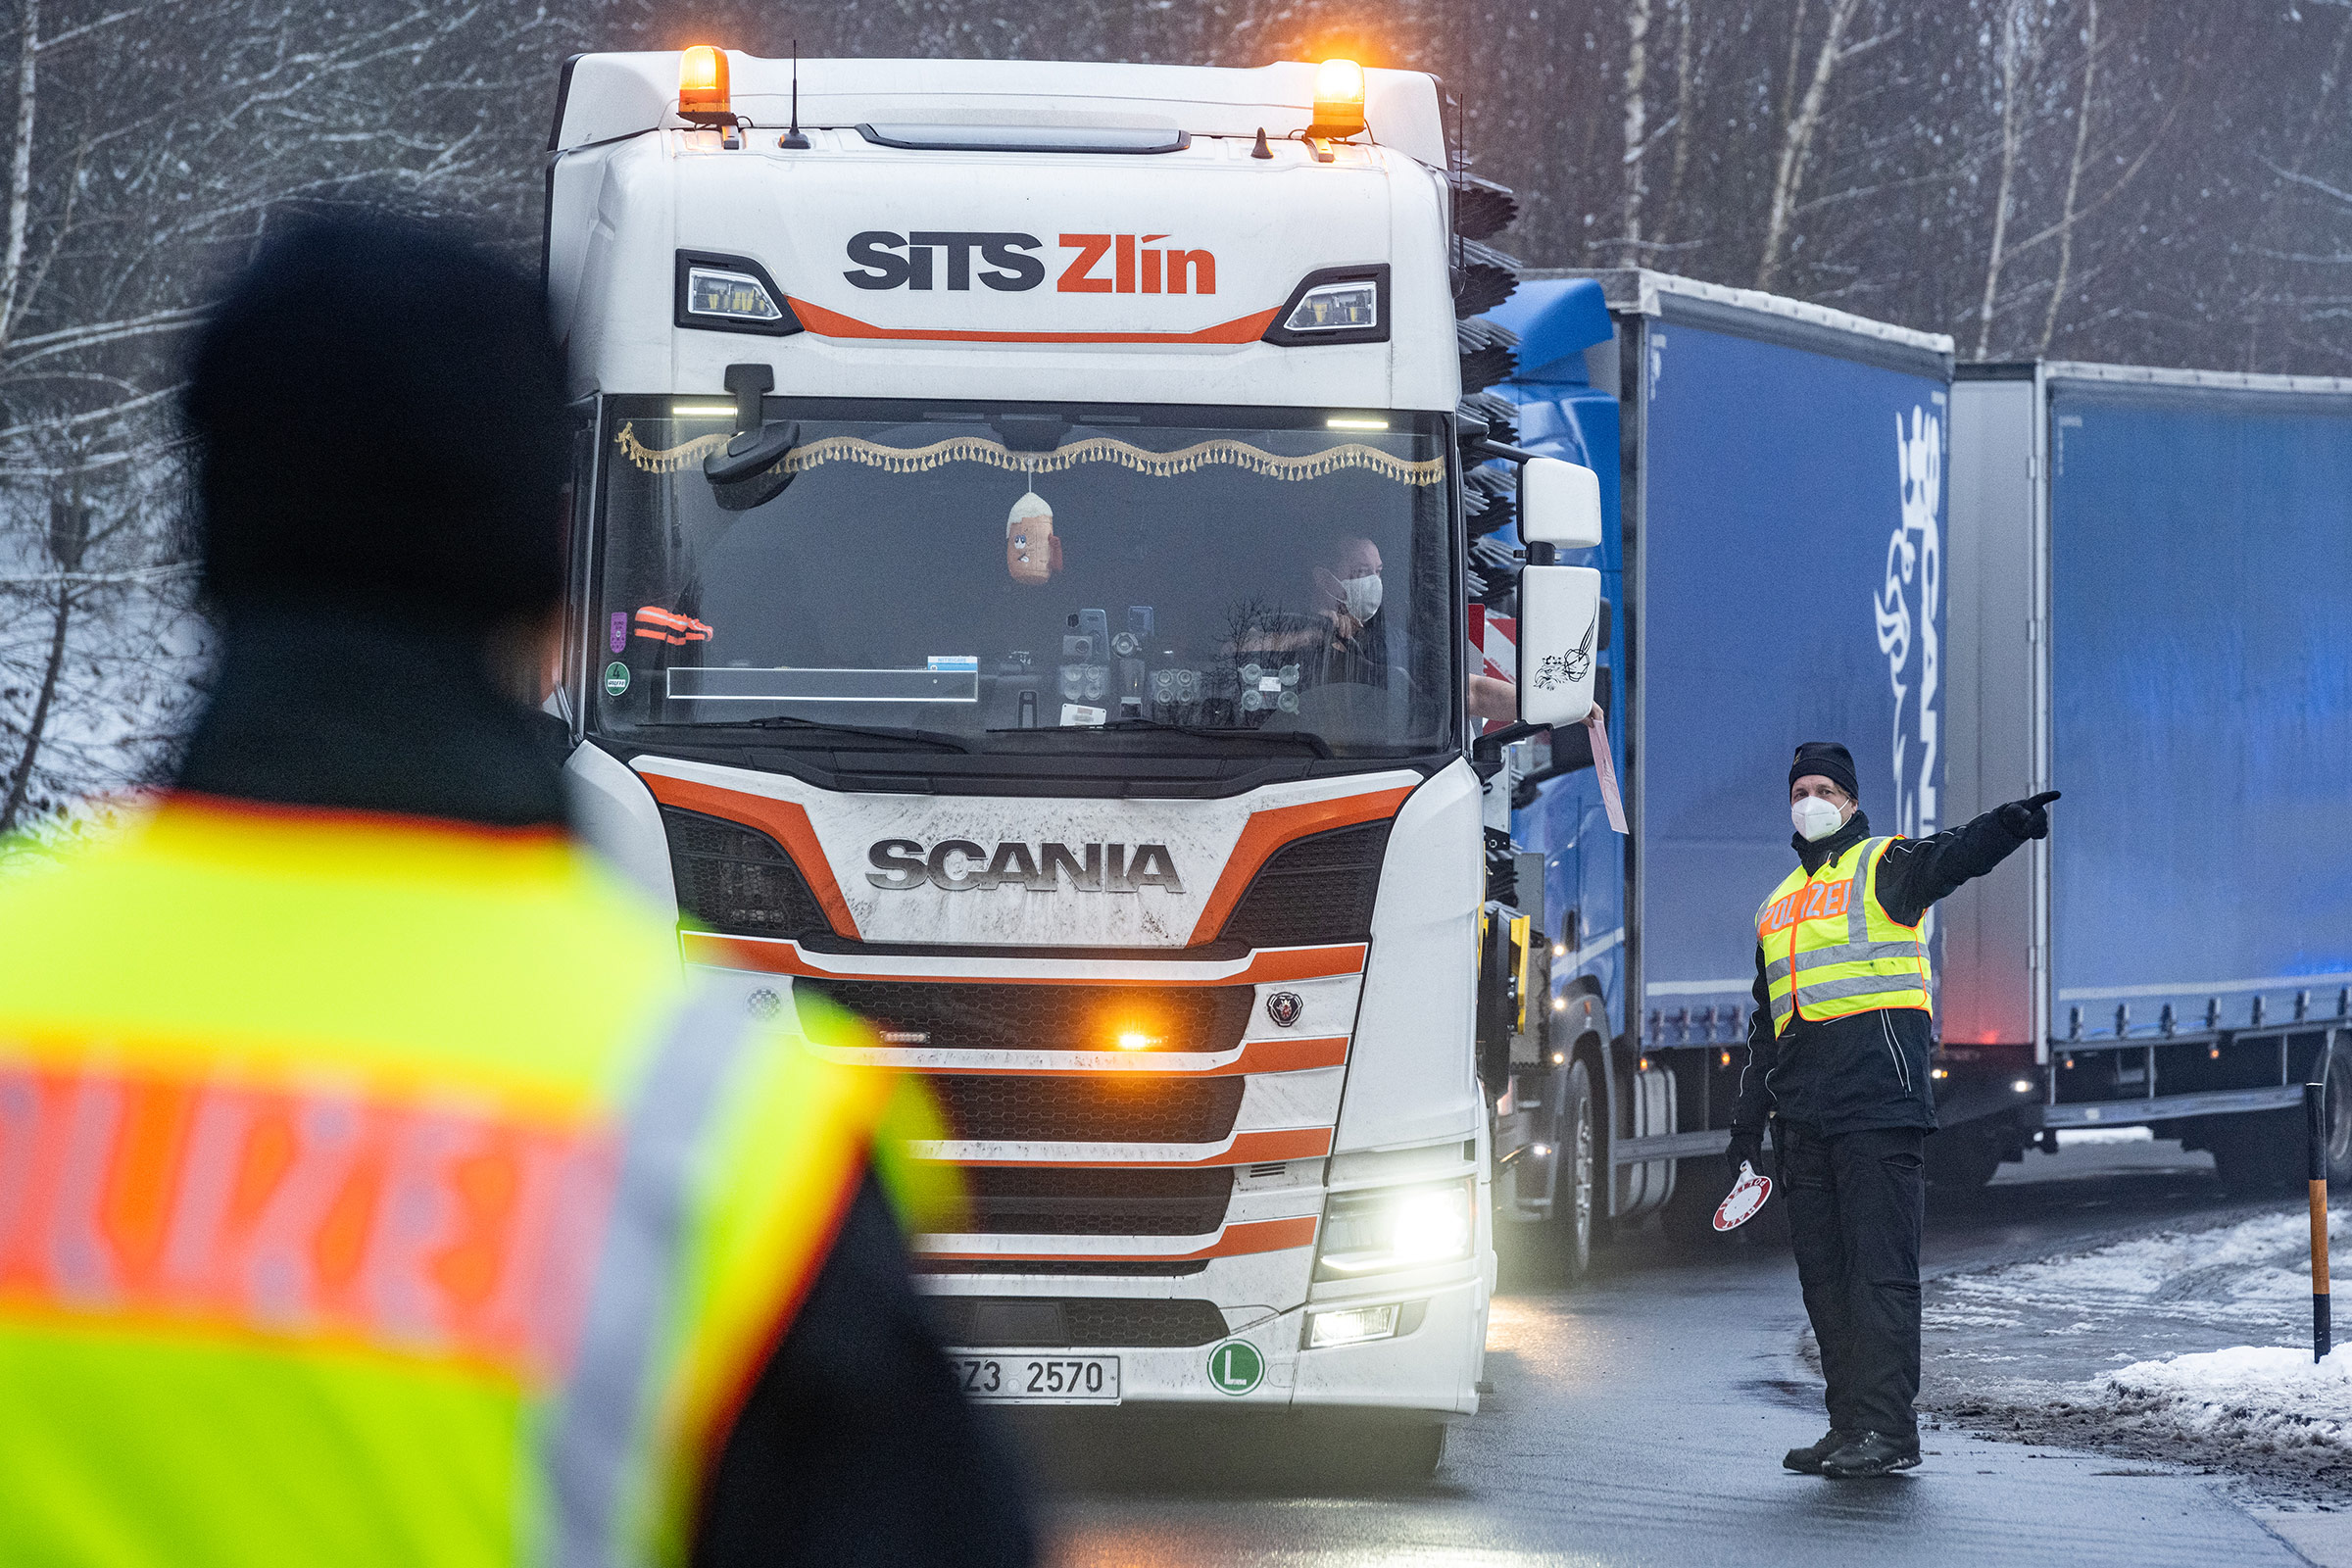 Police officers check vehicles at the Germany-Czech Republic border on February 16, in Bavaria, Germany.